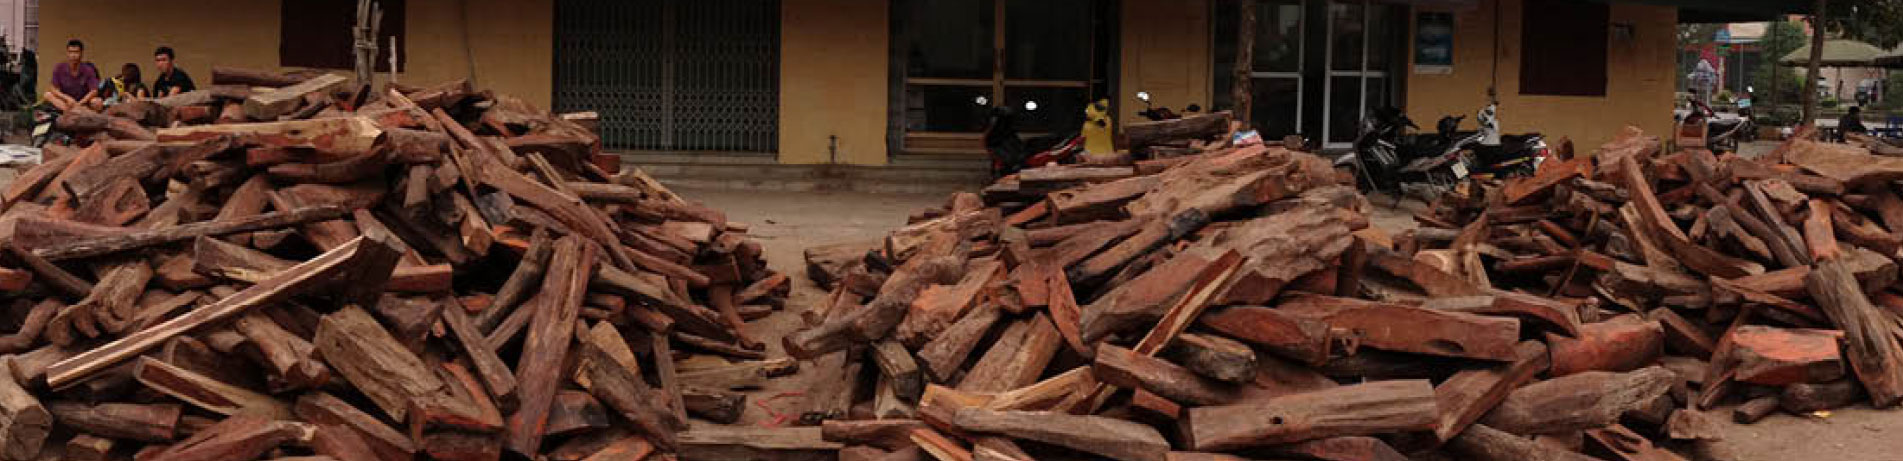 Stockpile of rosewood, Vietnam